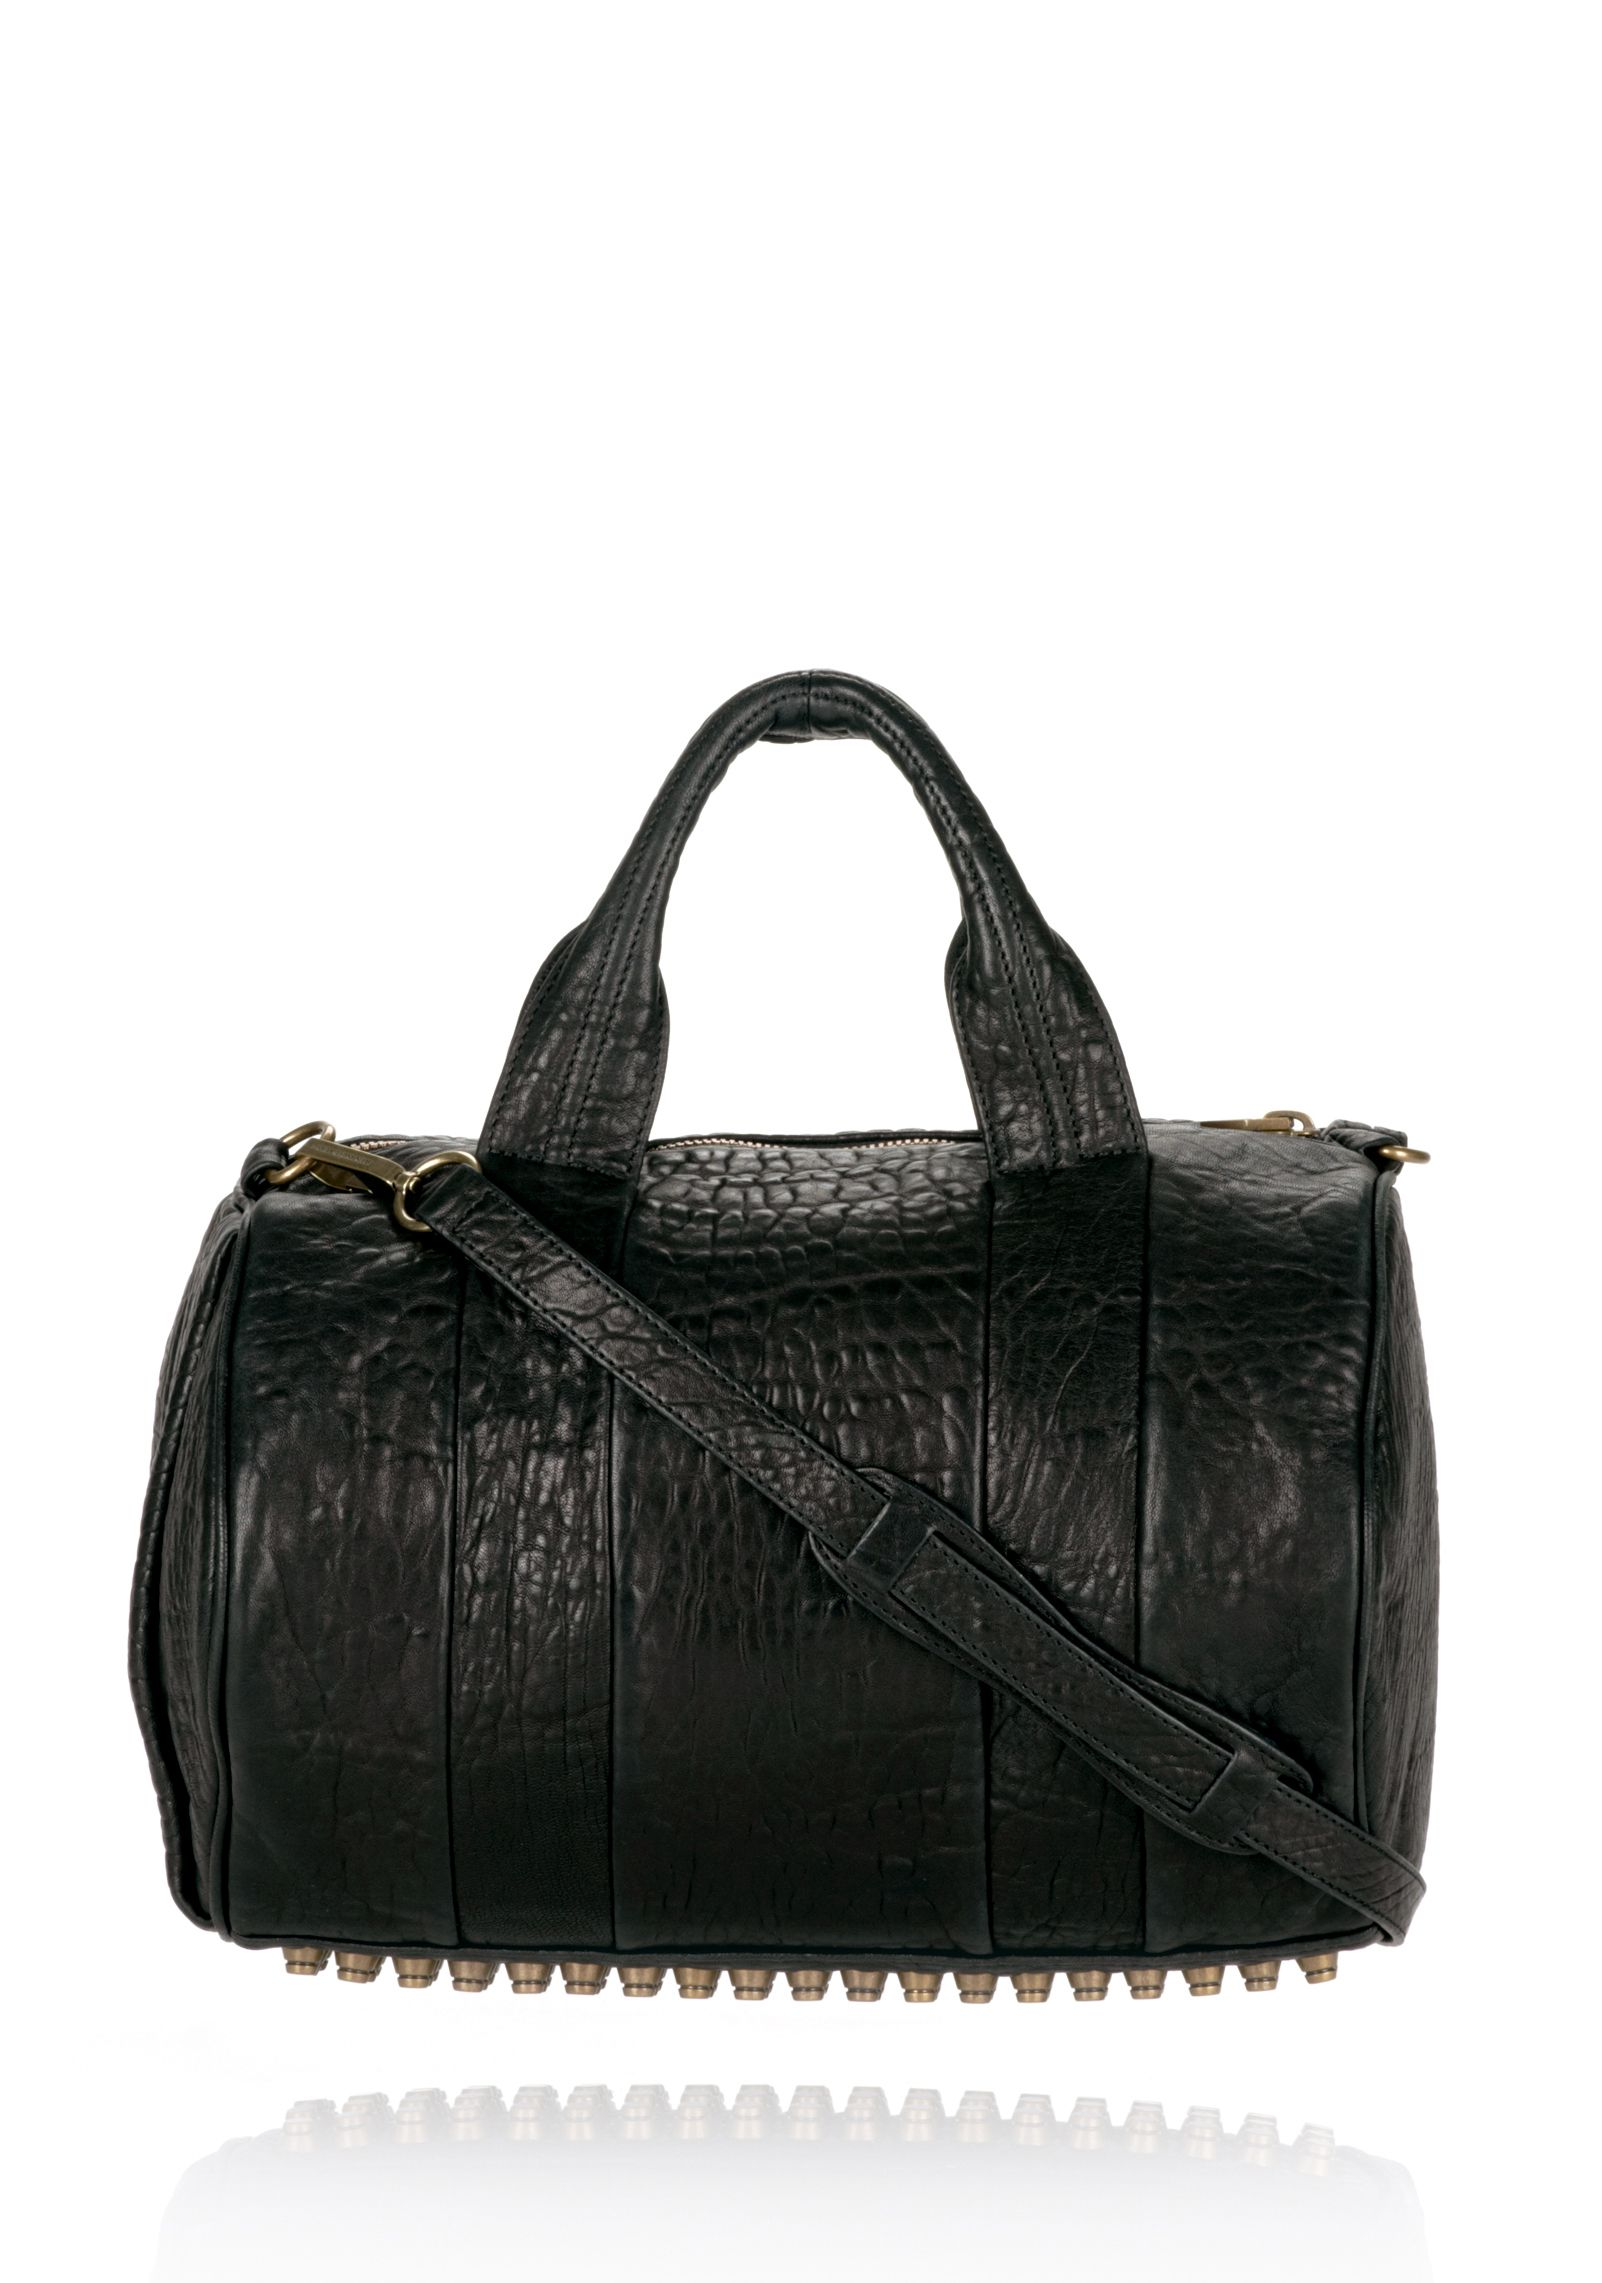 Shoulder bag Women - Bags Women on Alexander Wang Online Store